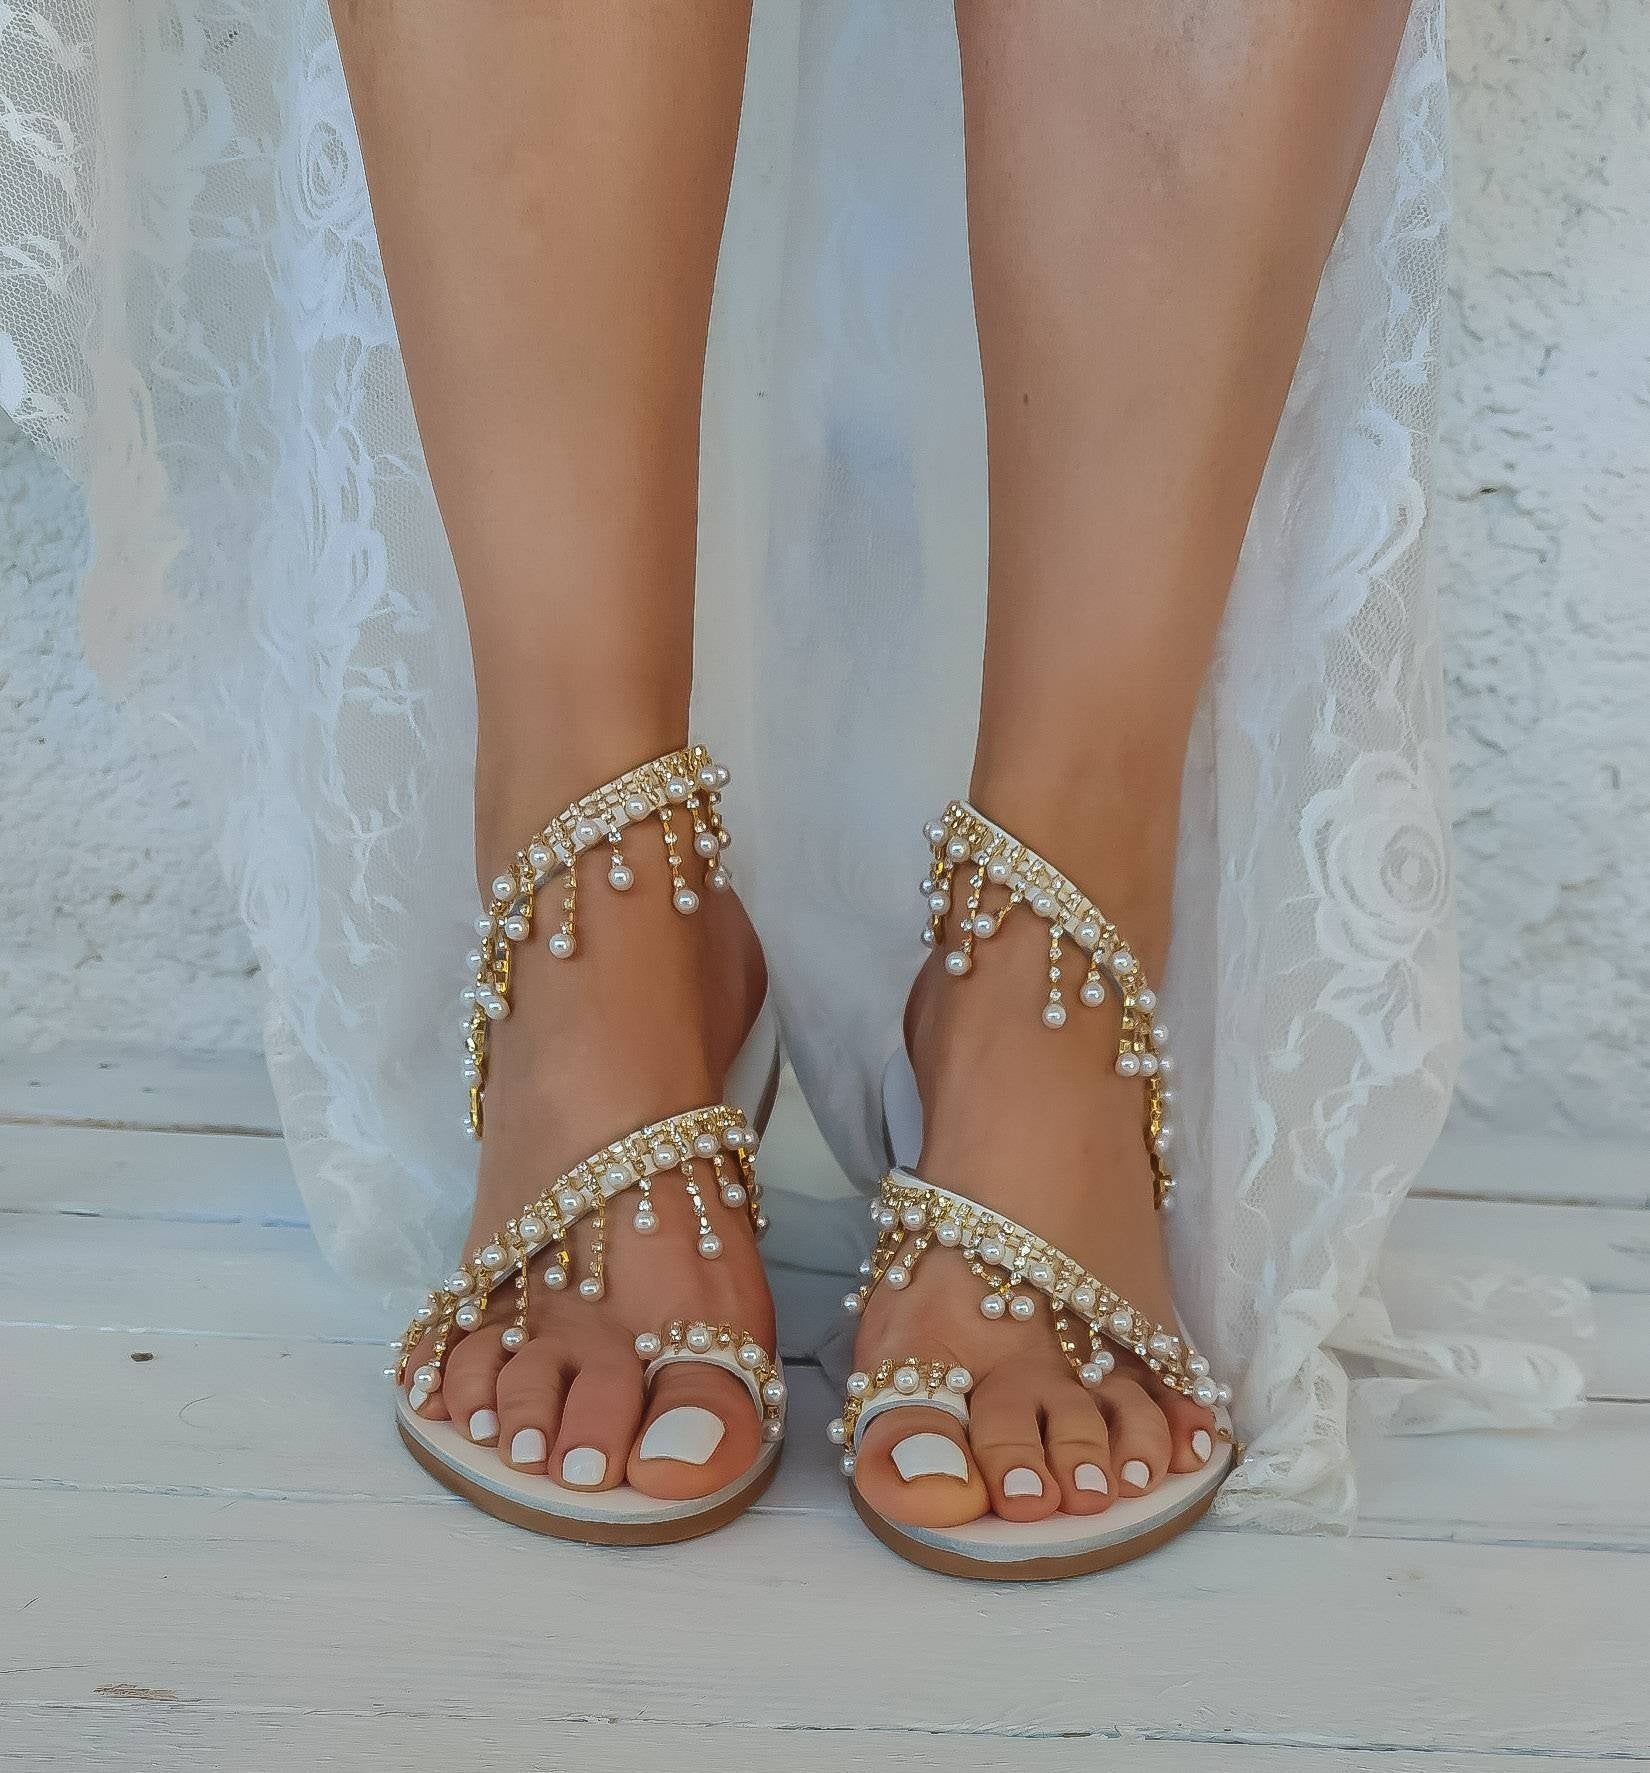 Wedding Sandals Leather Sandals Handmade To Order Bridal Sandals Beach Wedding Shoes Pearls We In 2020 Wedding Sandals Leather Wedding Sandals Beach Wedding Shoes